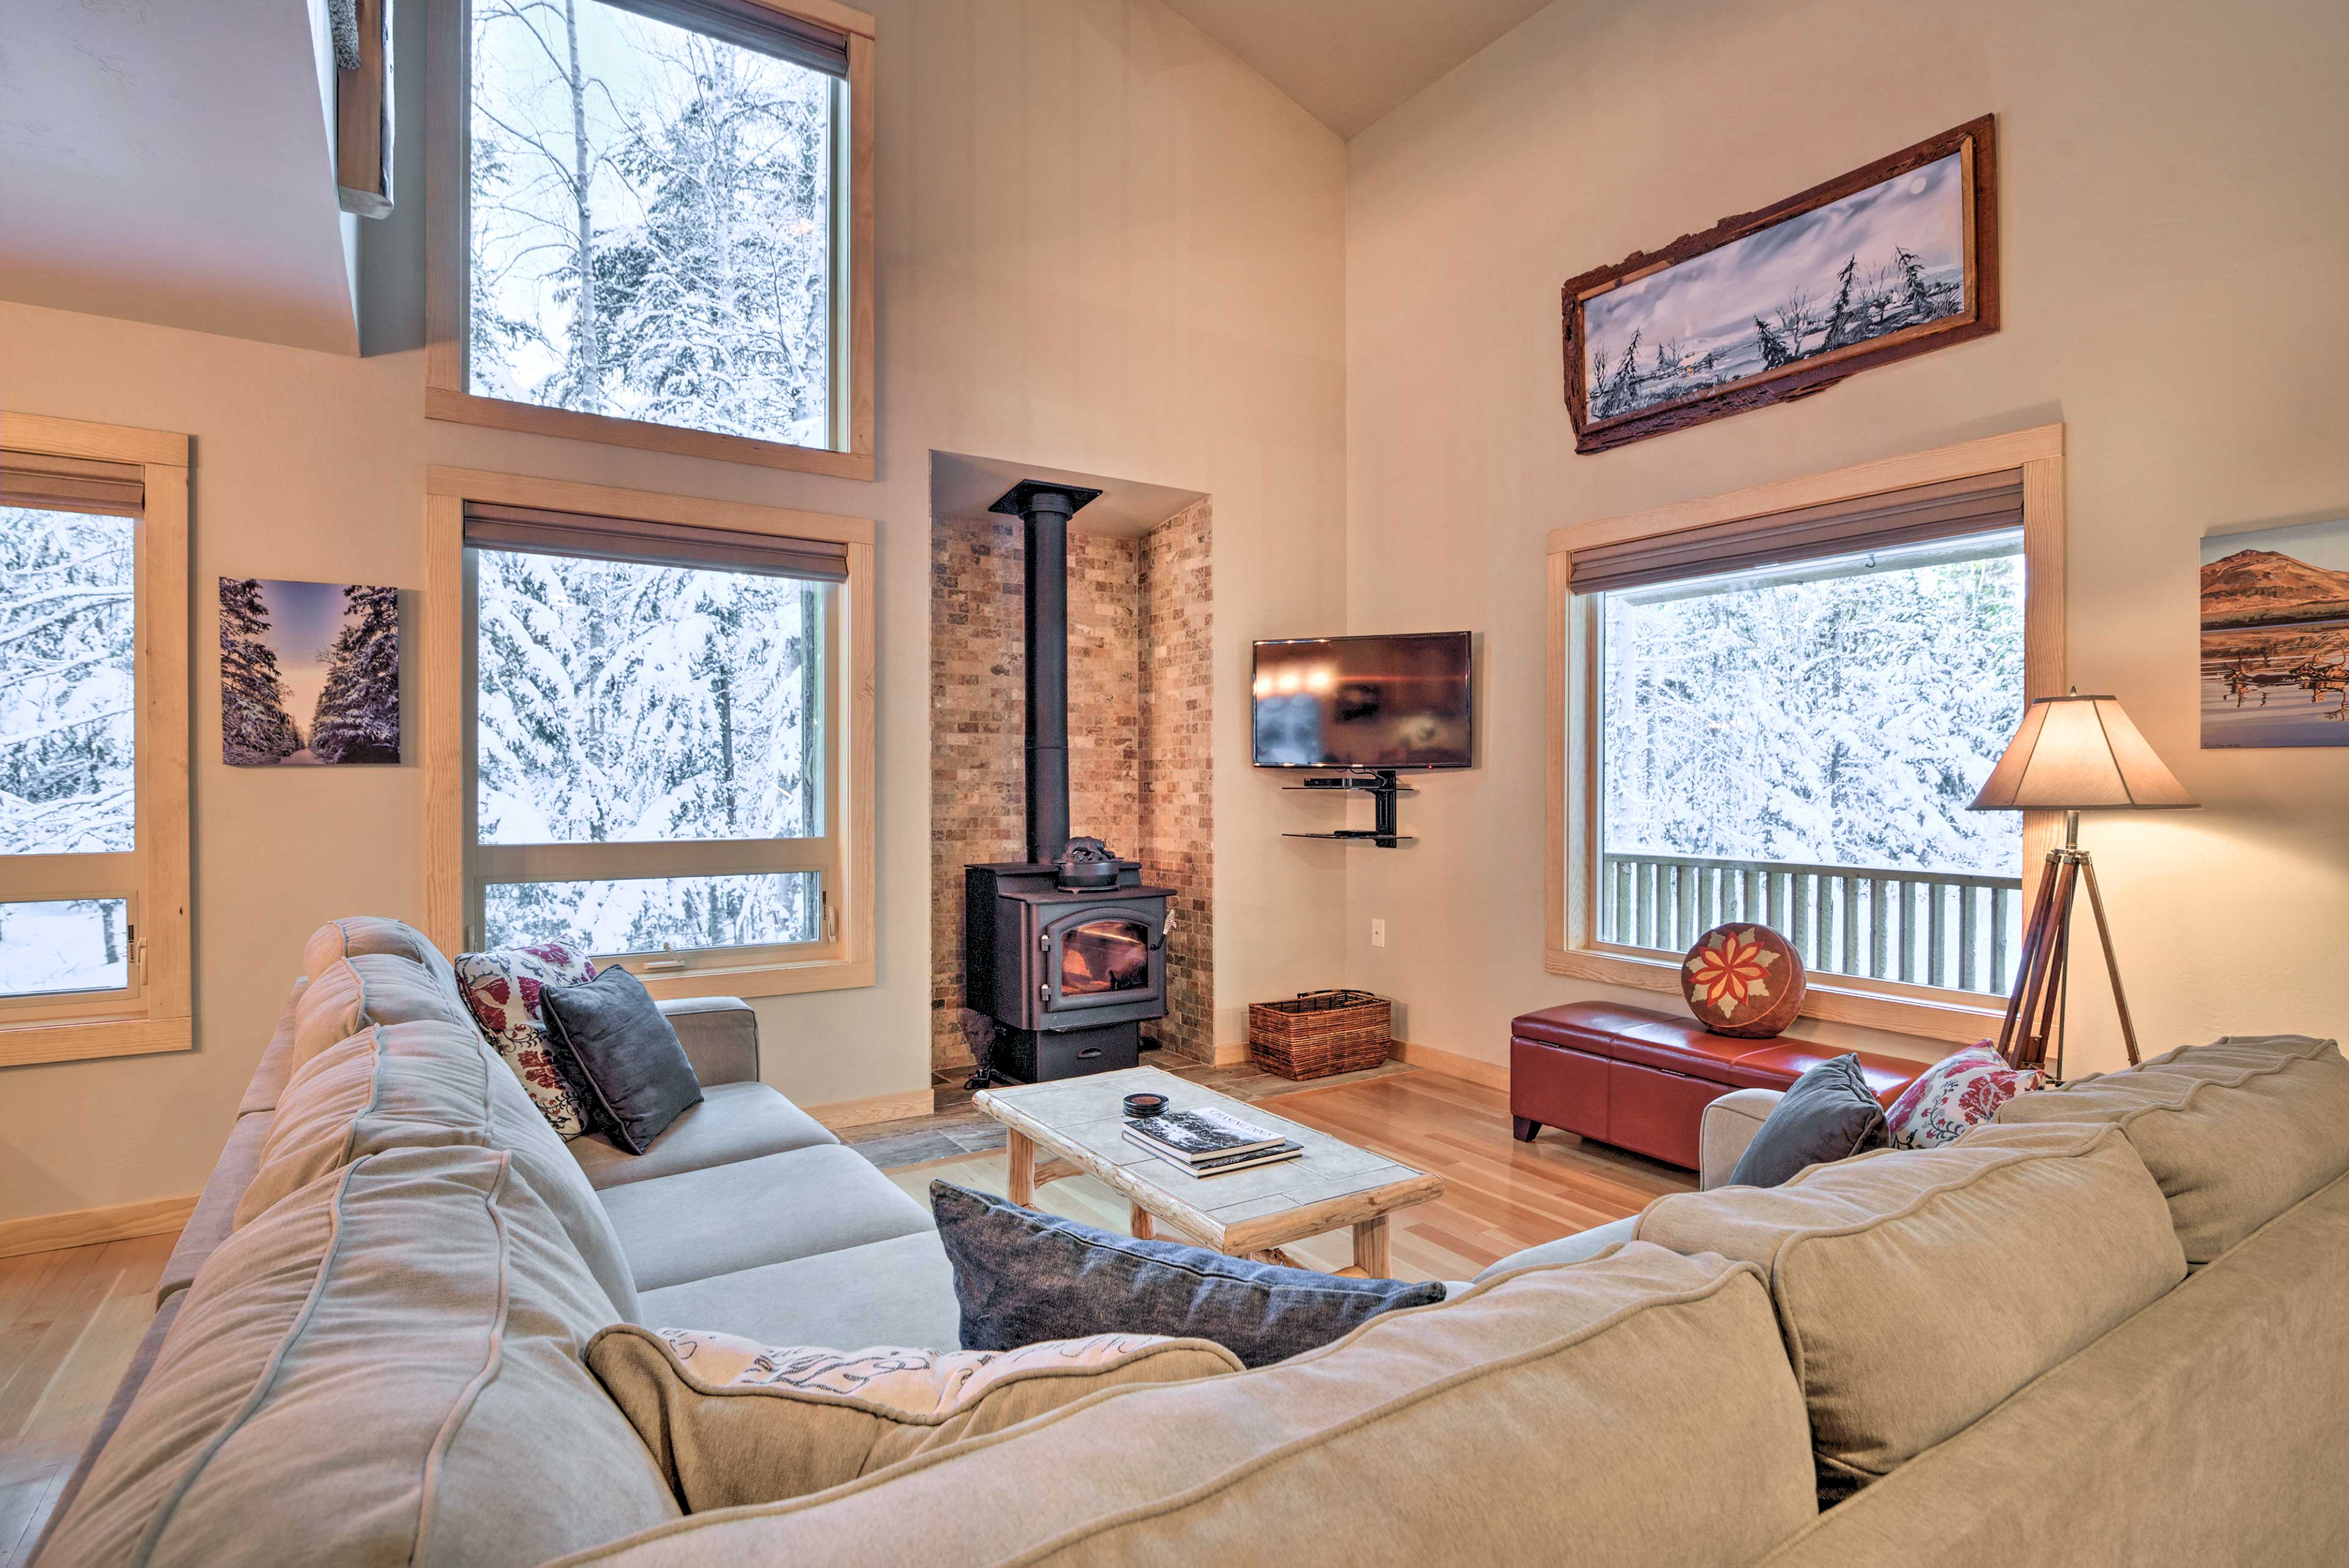 Step right into this true 'cabin in the woods' to experience the warmth of home.